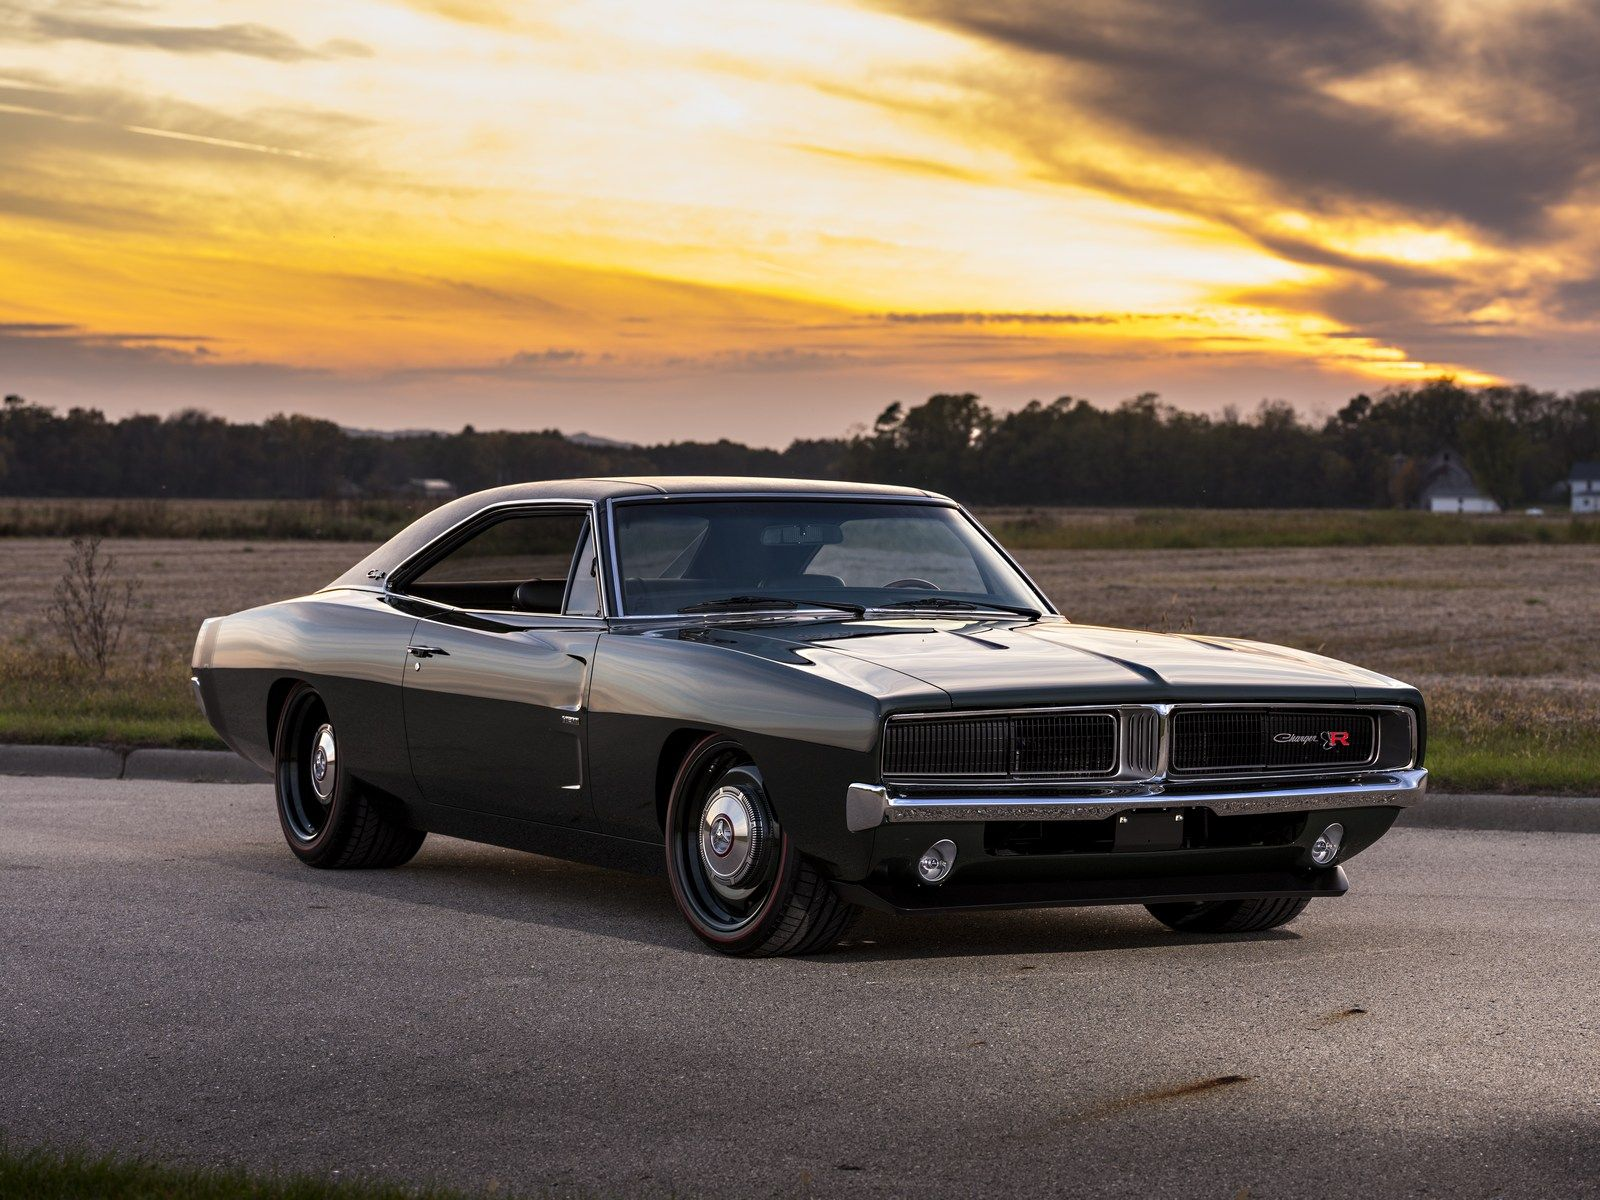 1969 Dodge Charger Defector Is A Hemi Powered Restomod With